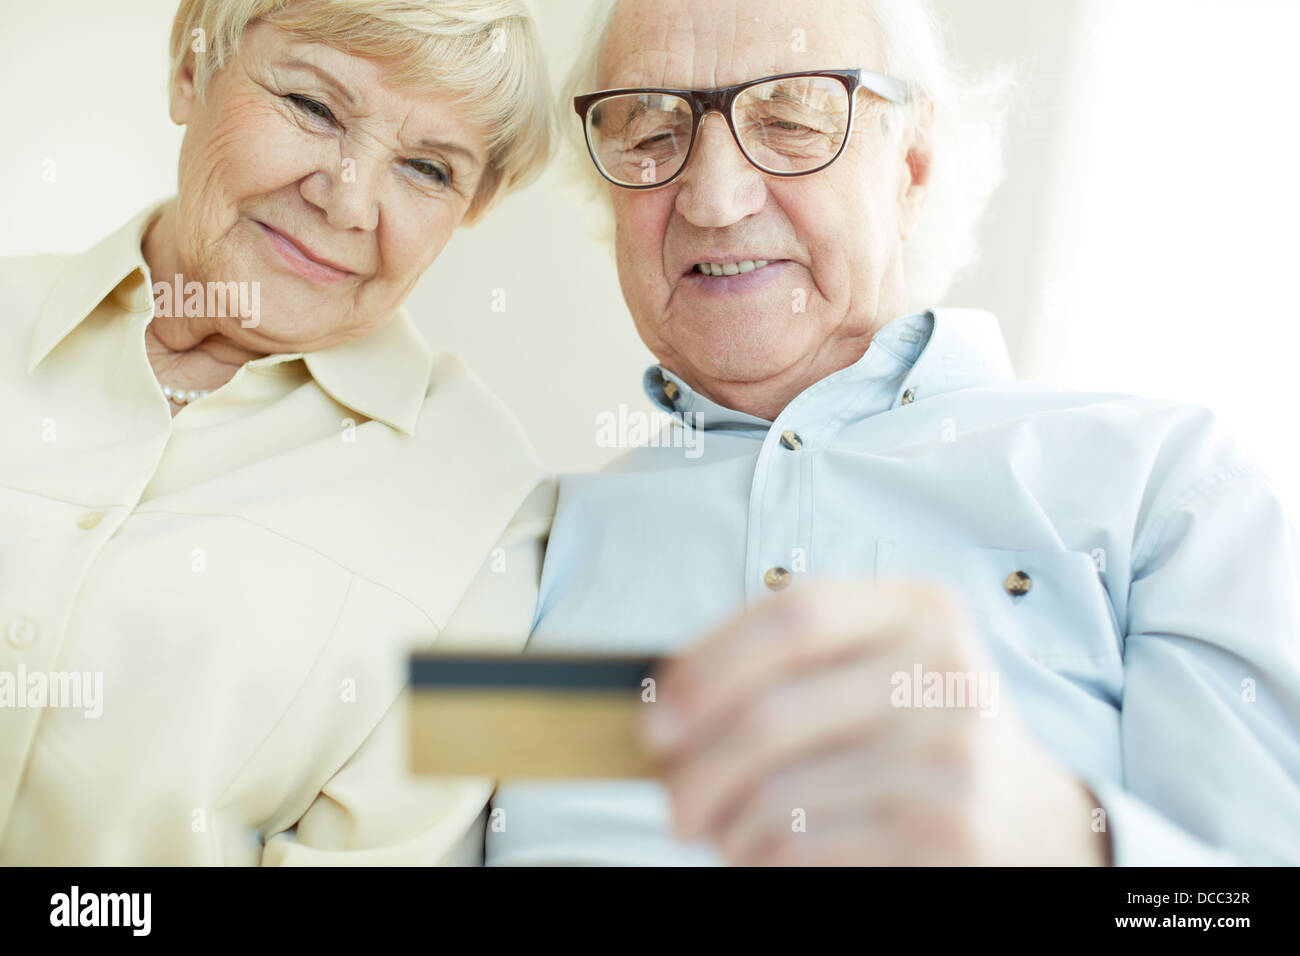 Portrait of elderly man and his wife looking at plastic card - Stock Image